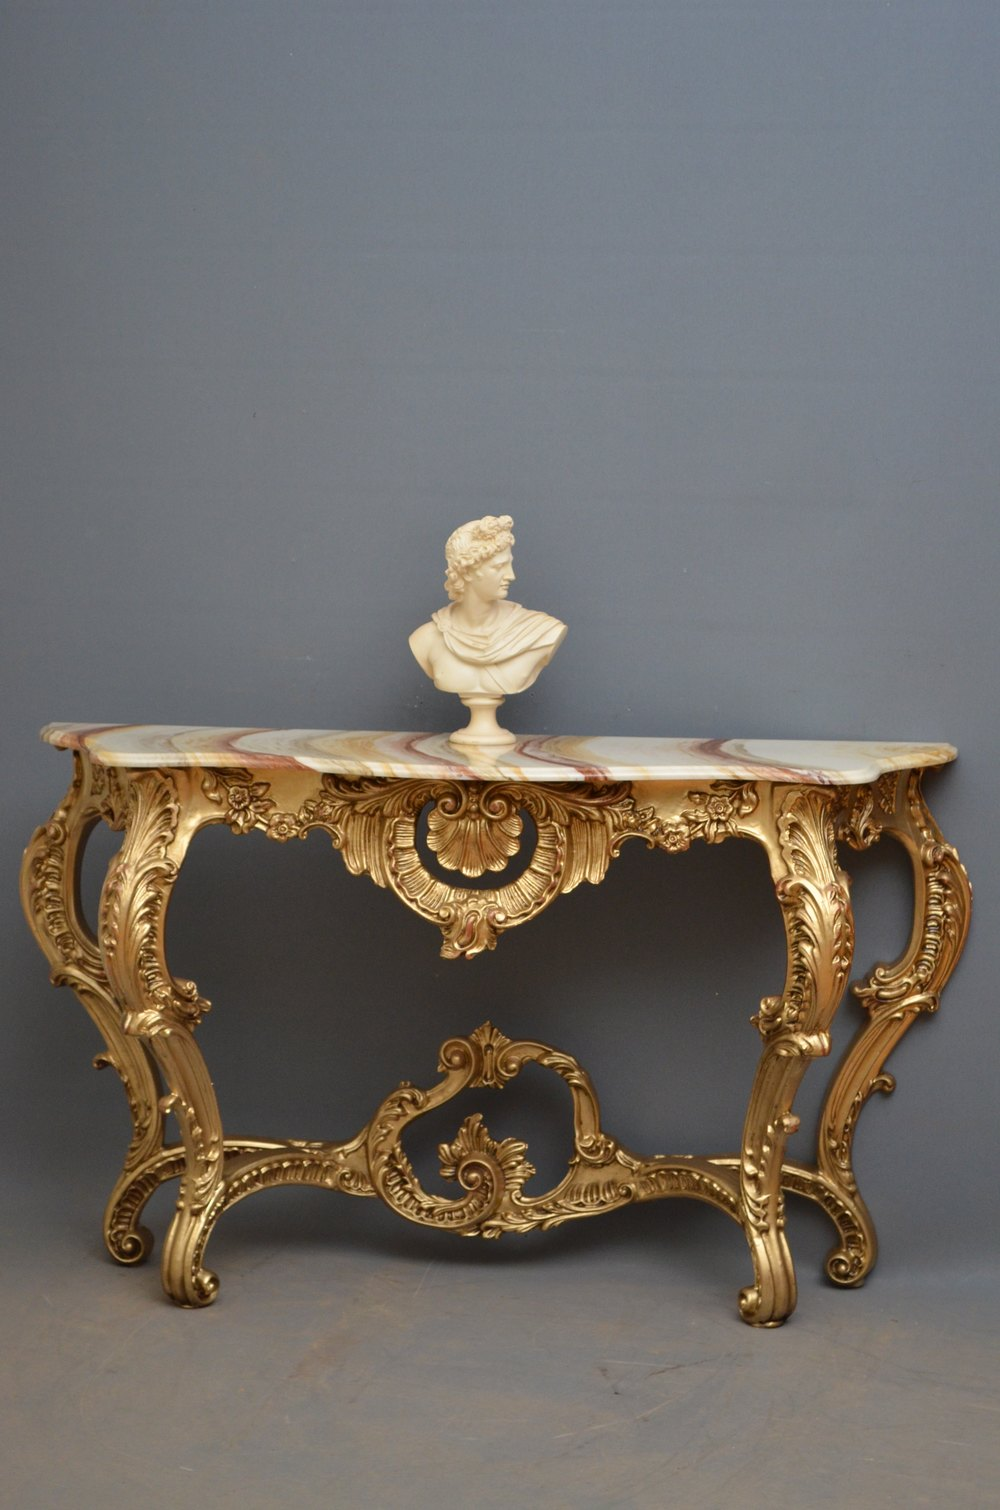 A very decorative console table antiques atlas - Ornate hall table ...